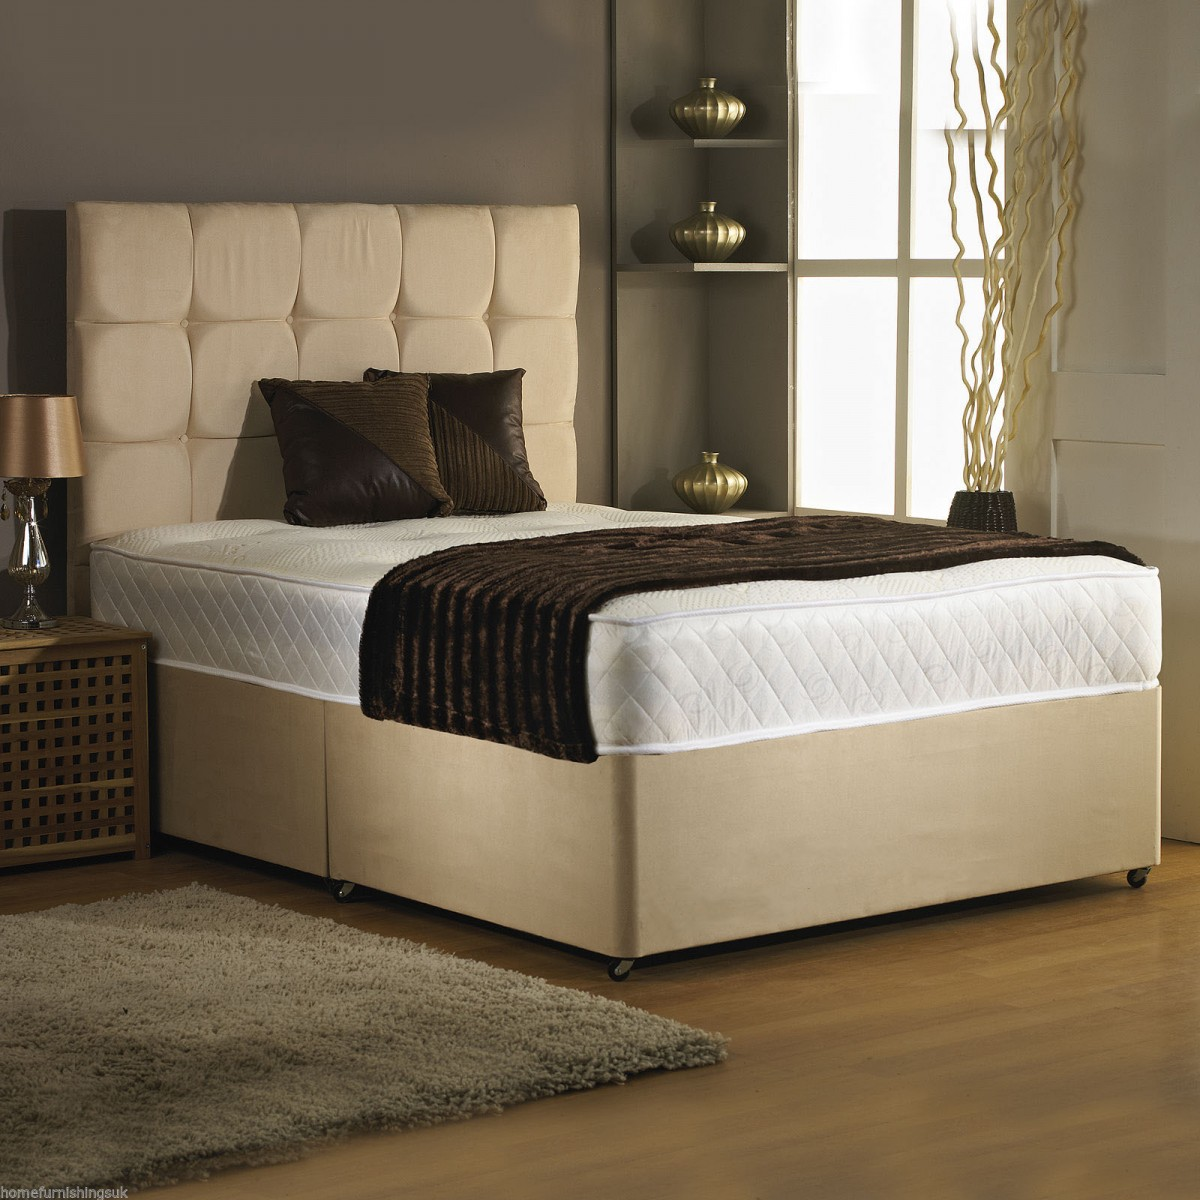 Double Divan Beds 4ft 6in Double Divan Bed Base In Stone Colour Suede